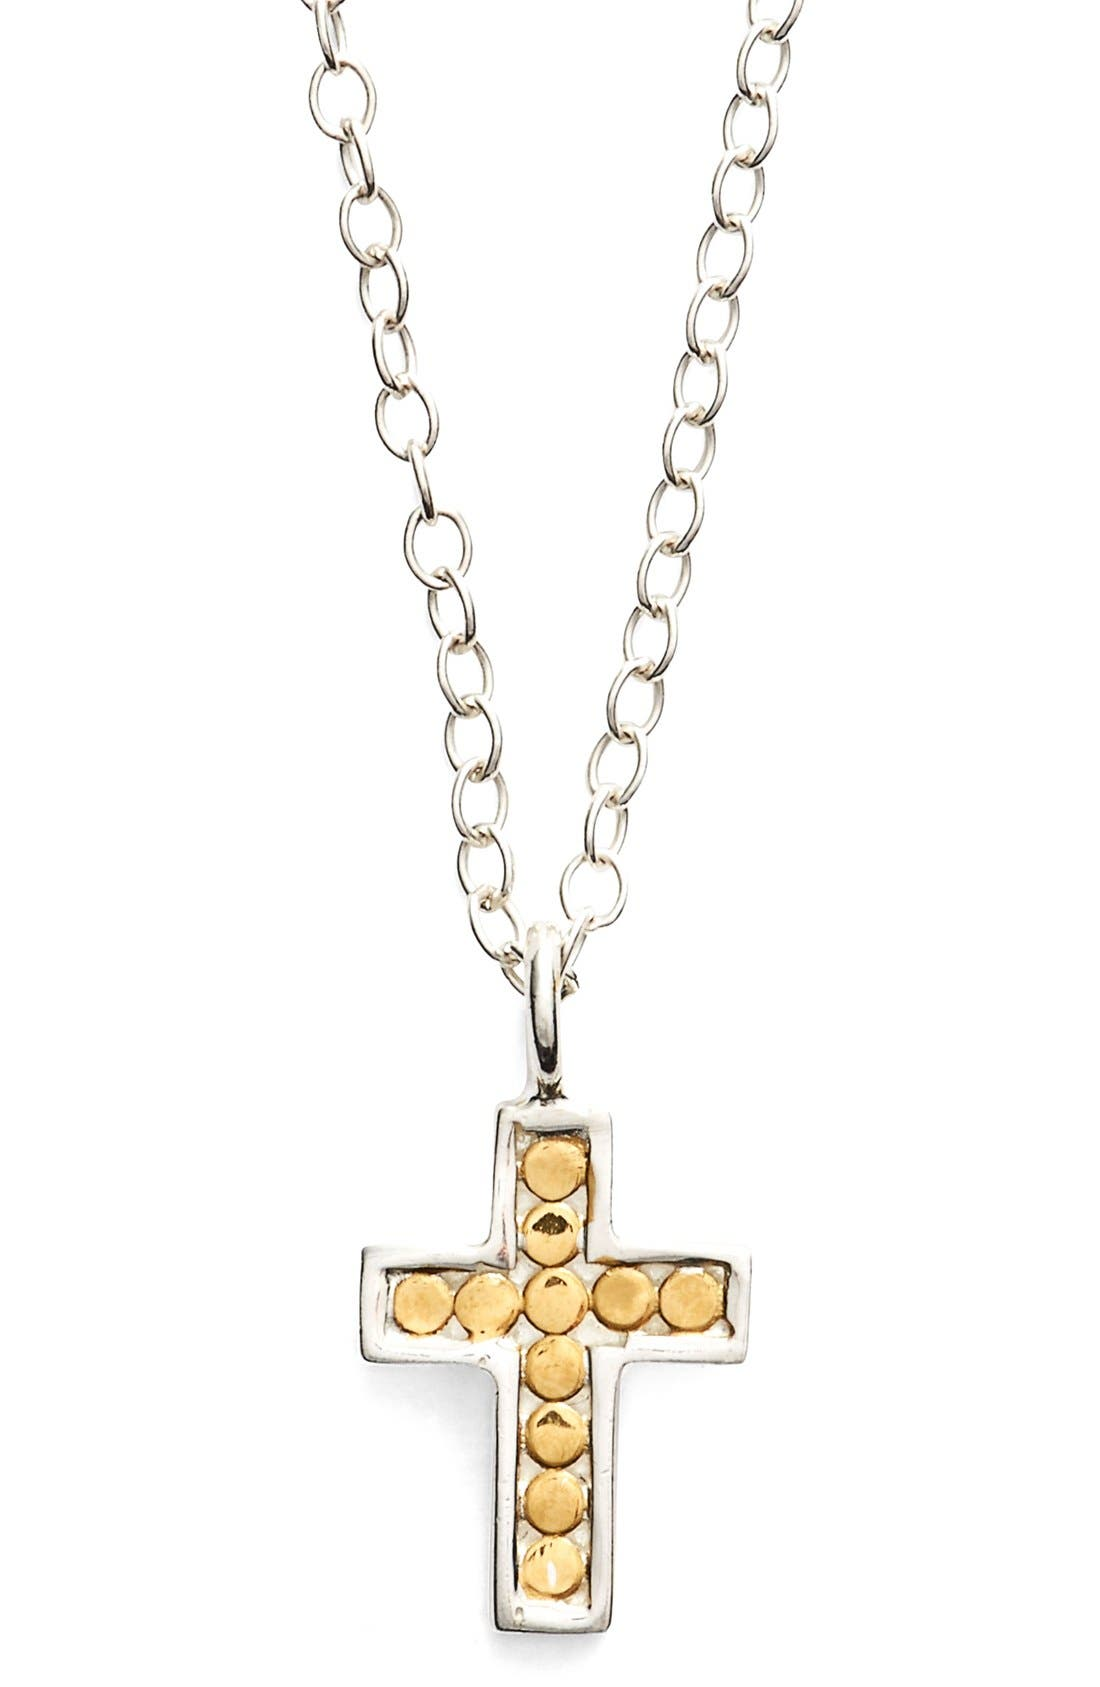 Alternate Image 1 Selected - Anna Beck 'Gili' Reversible Mini Cross Necklace